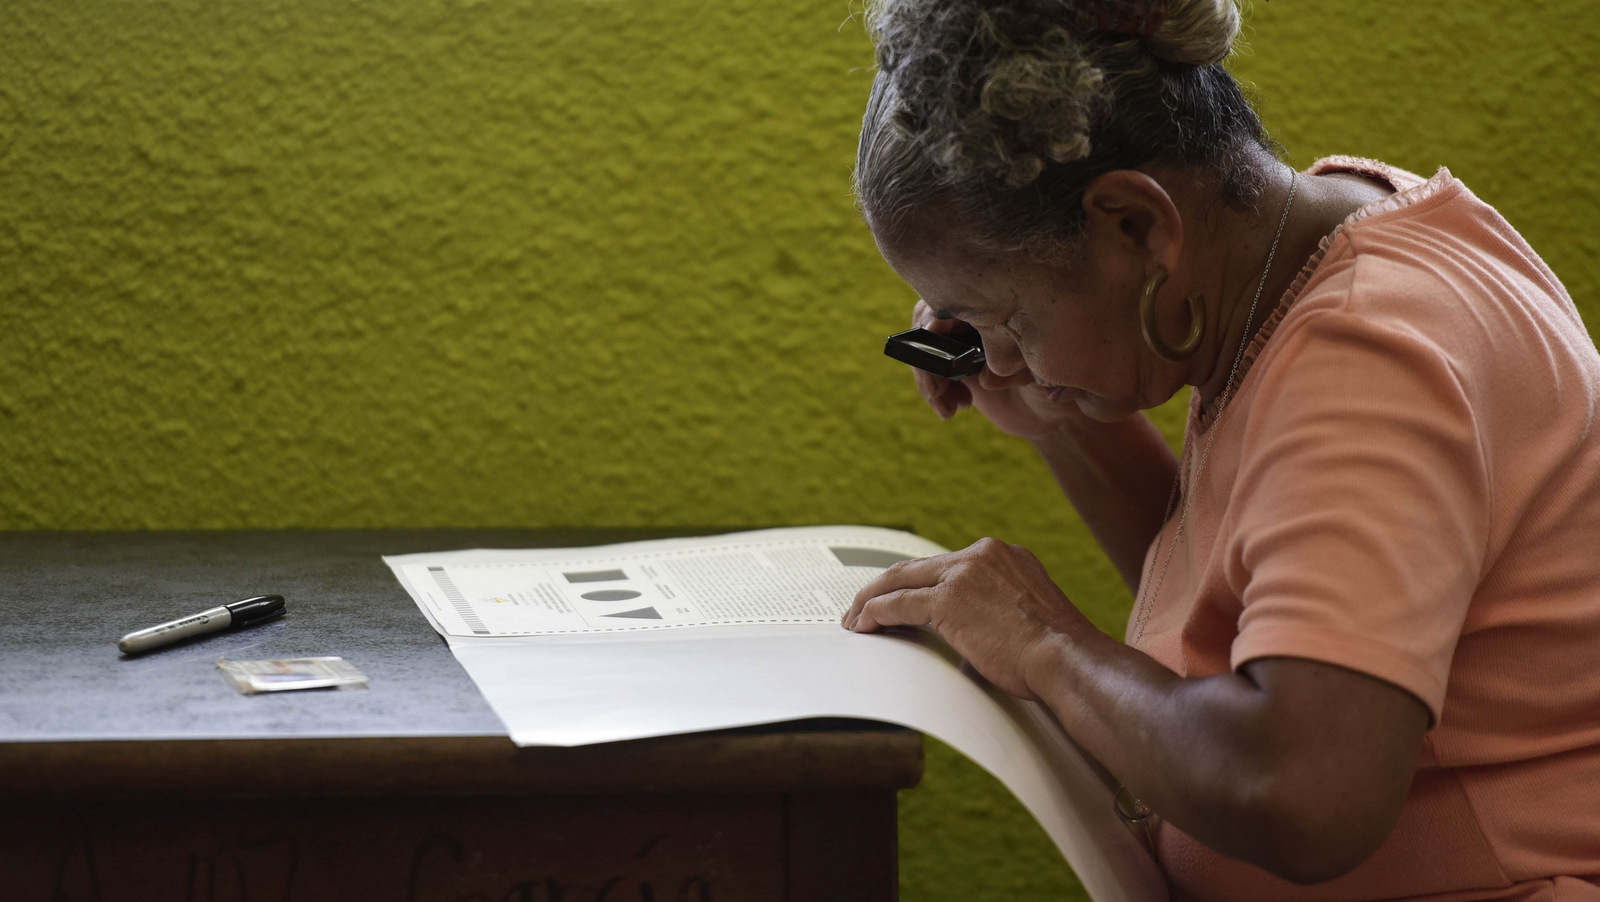 Puerto Rican resident Maria Quinones looks carefully at her ballot with a magnifying glass before voting during the fifth referendum on the island's status, in San Juan, Puerto Rico, June 11, 2017. (AP/Carlos Giusti)